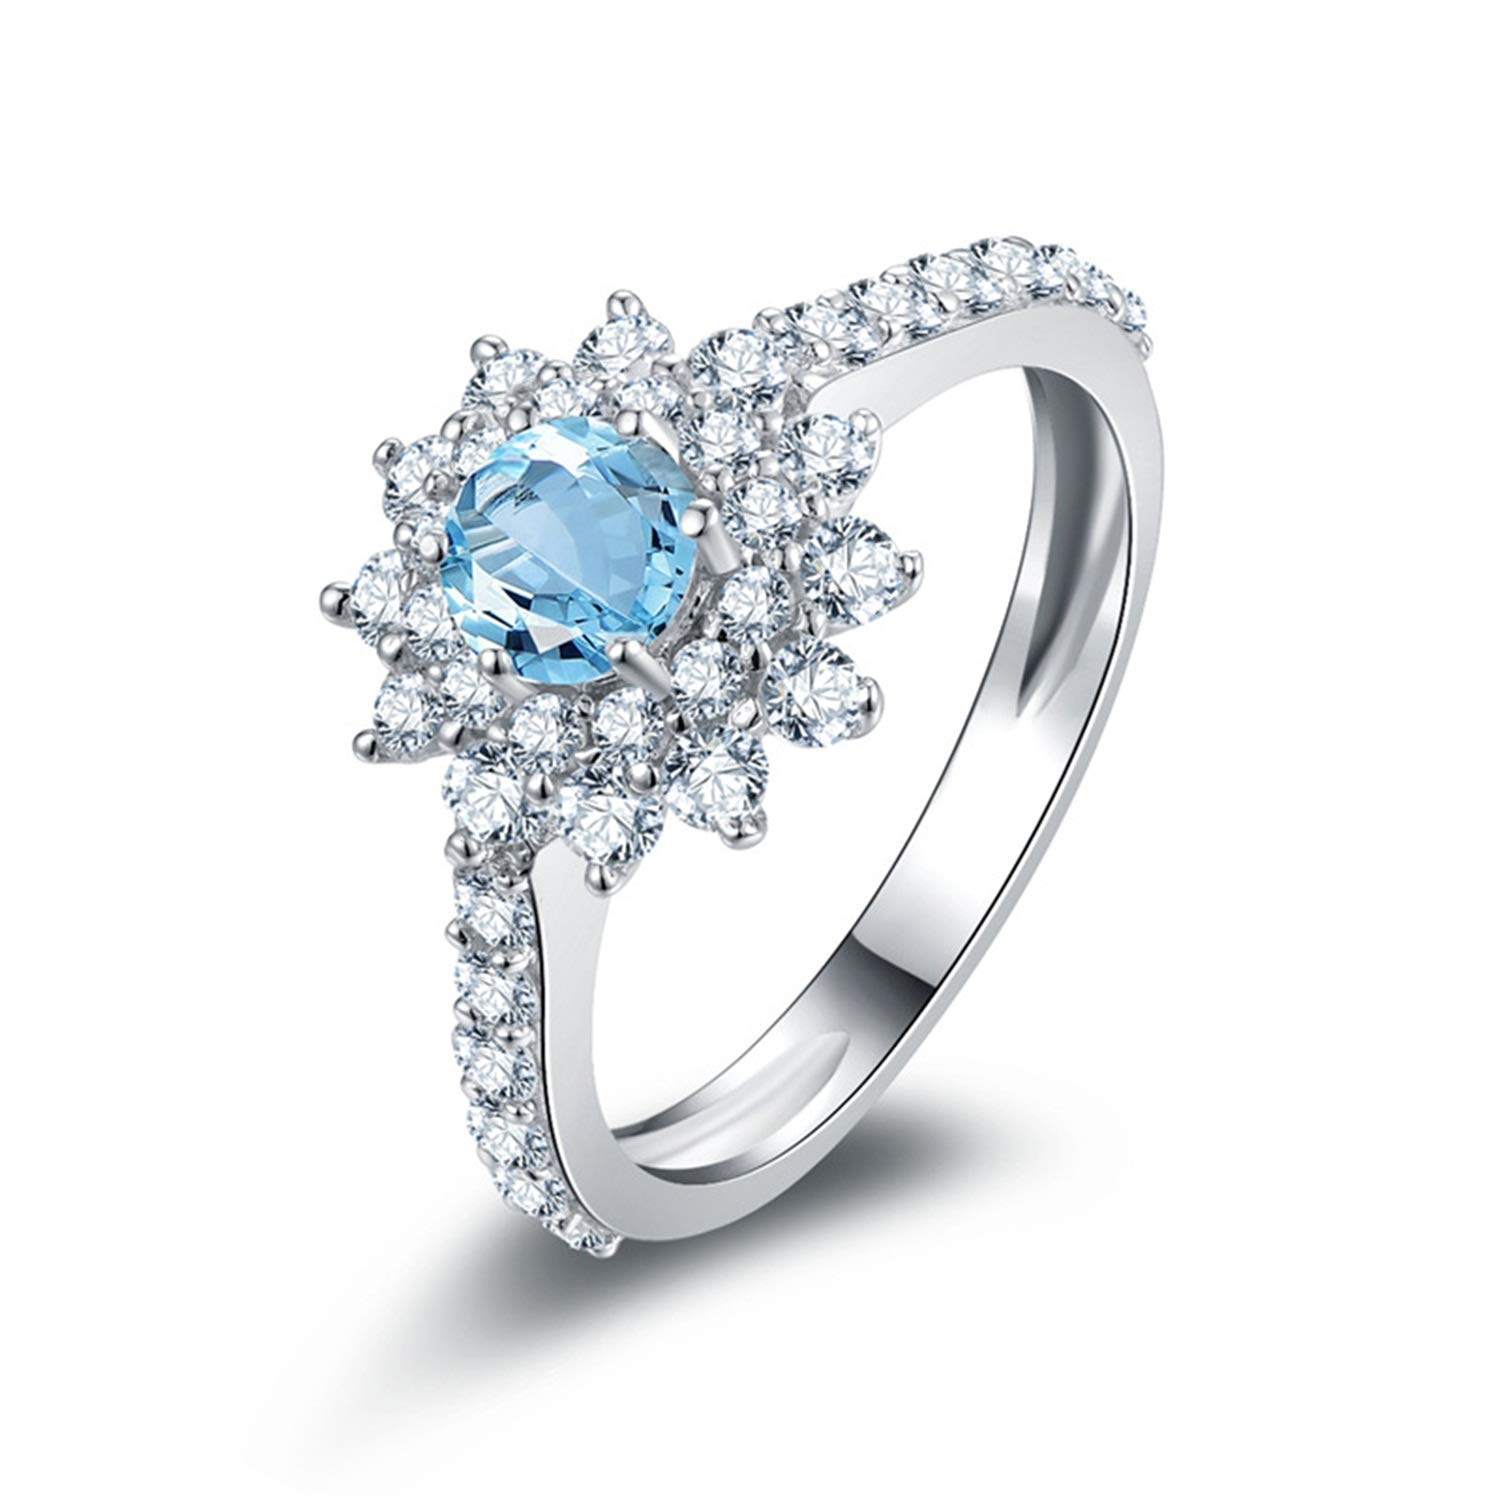 AMDXD Jewellery 925 Sterling Silver Bands Women Blue Round Cut Topaz Round Rings